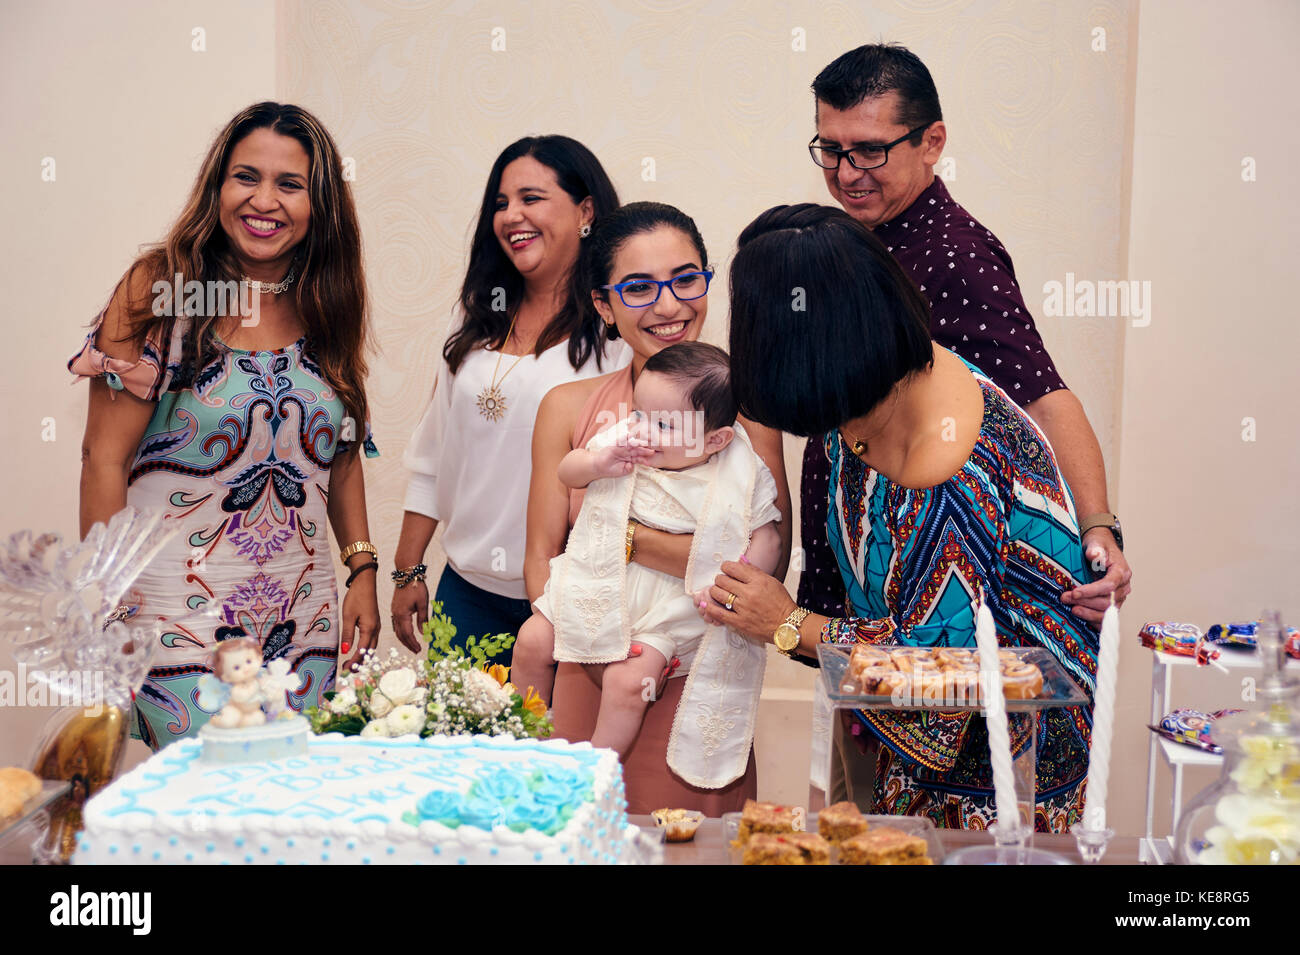 Guests having their picture taken with the just christened baby at his baptismal party Stock Photo